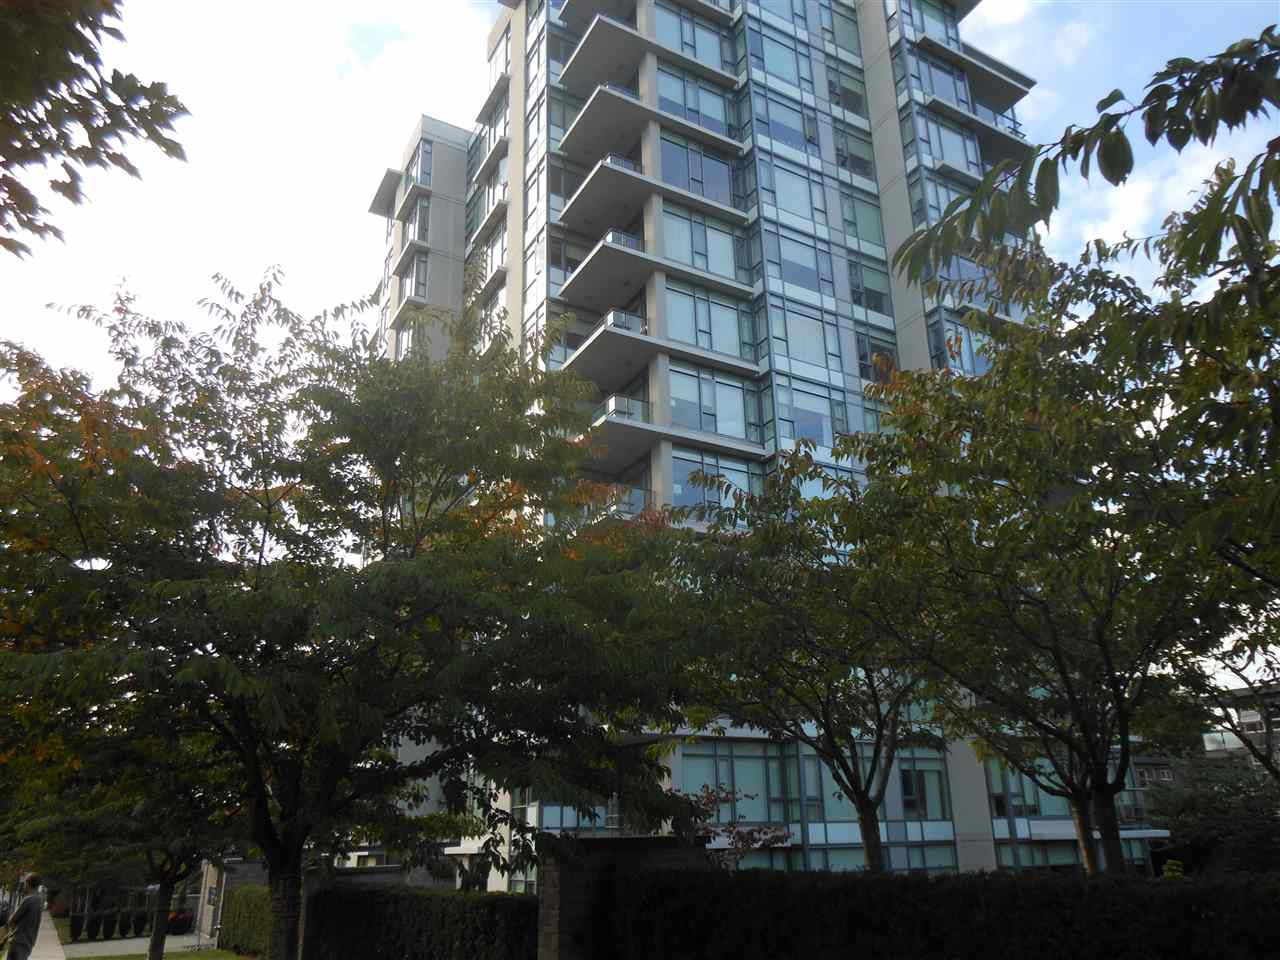 """Main Photo: 207 1333 W 11TH Avenue in Vancouver: Fairview VW Condo for sale in """"SAKURA"""" (Vancouver West)  : MLS®# R2006799"""